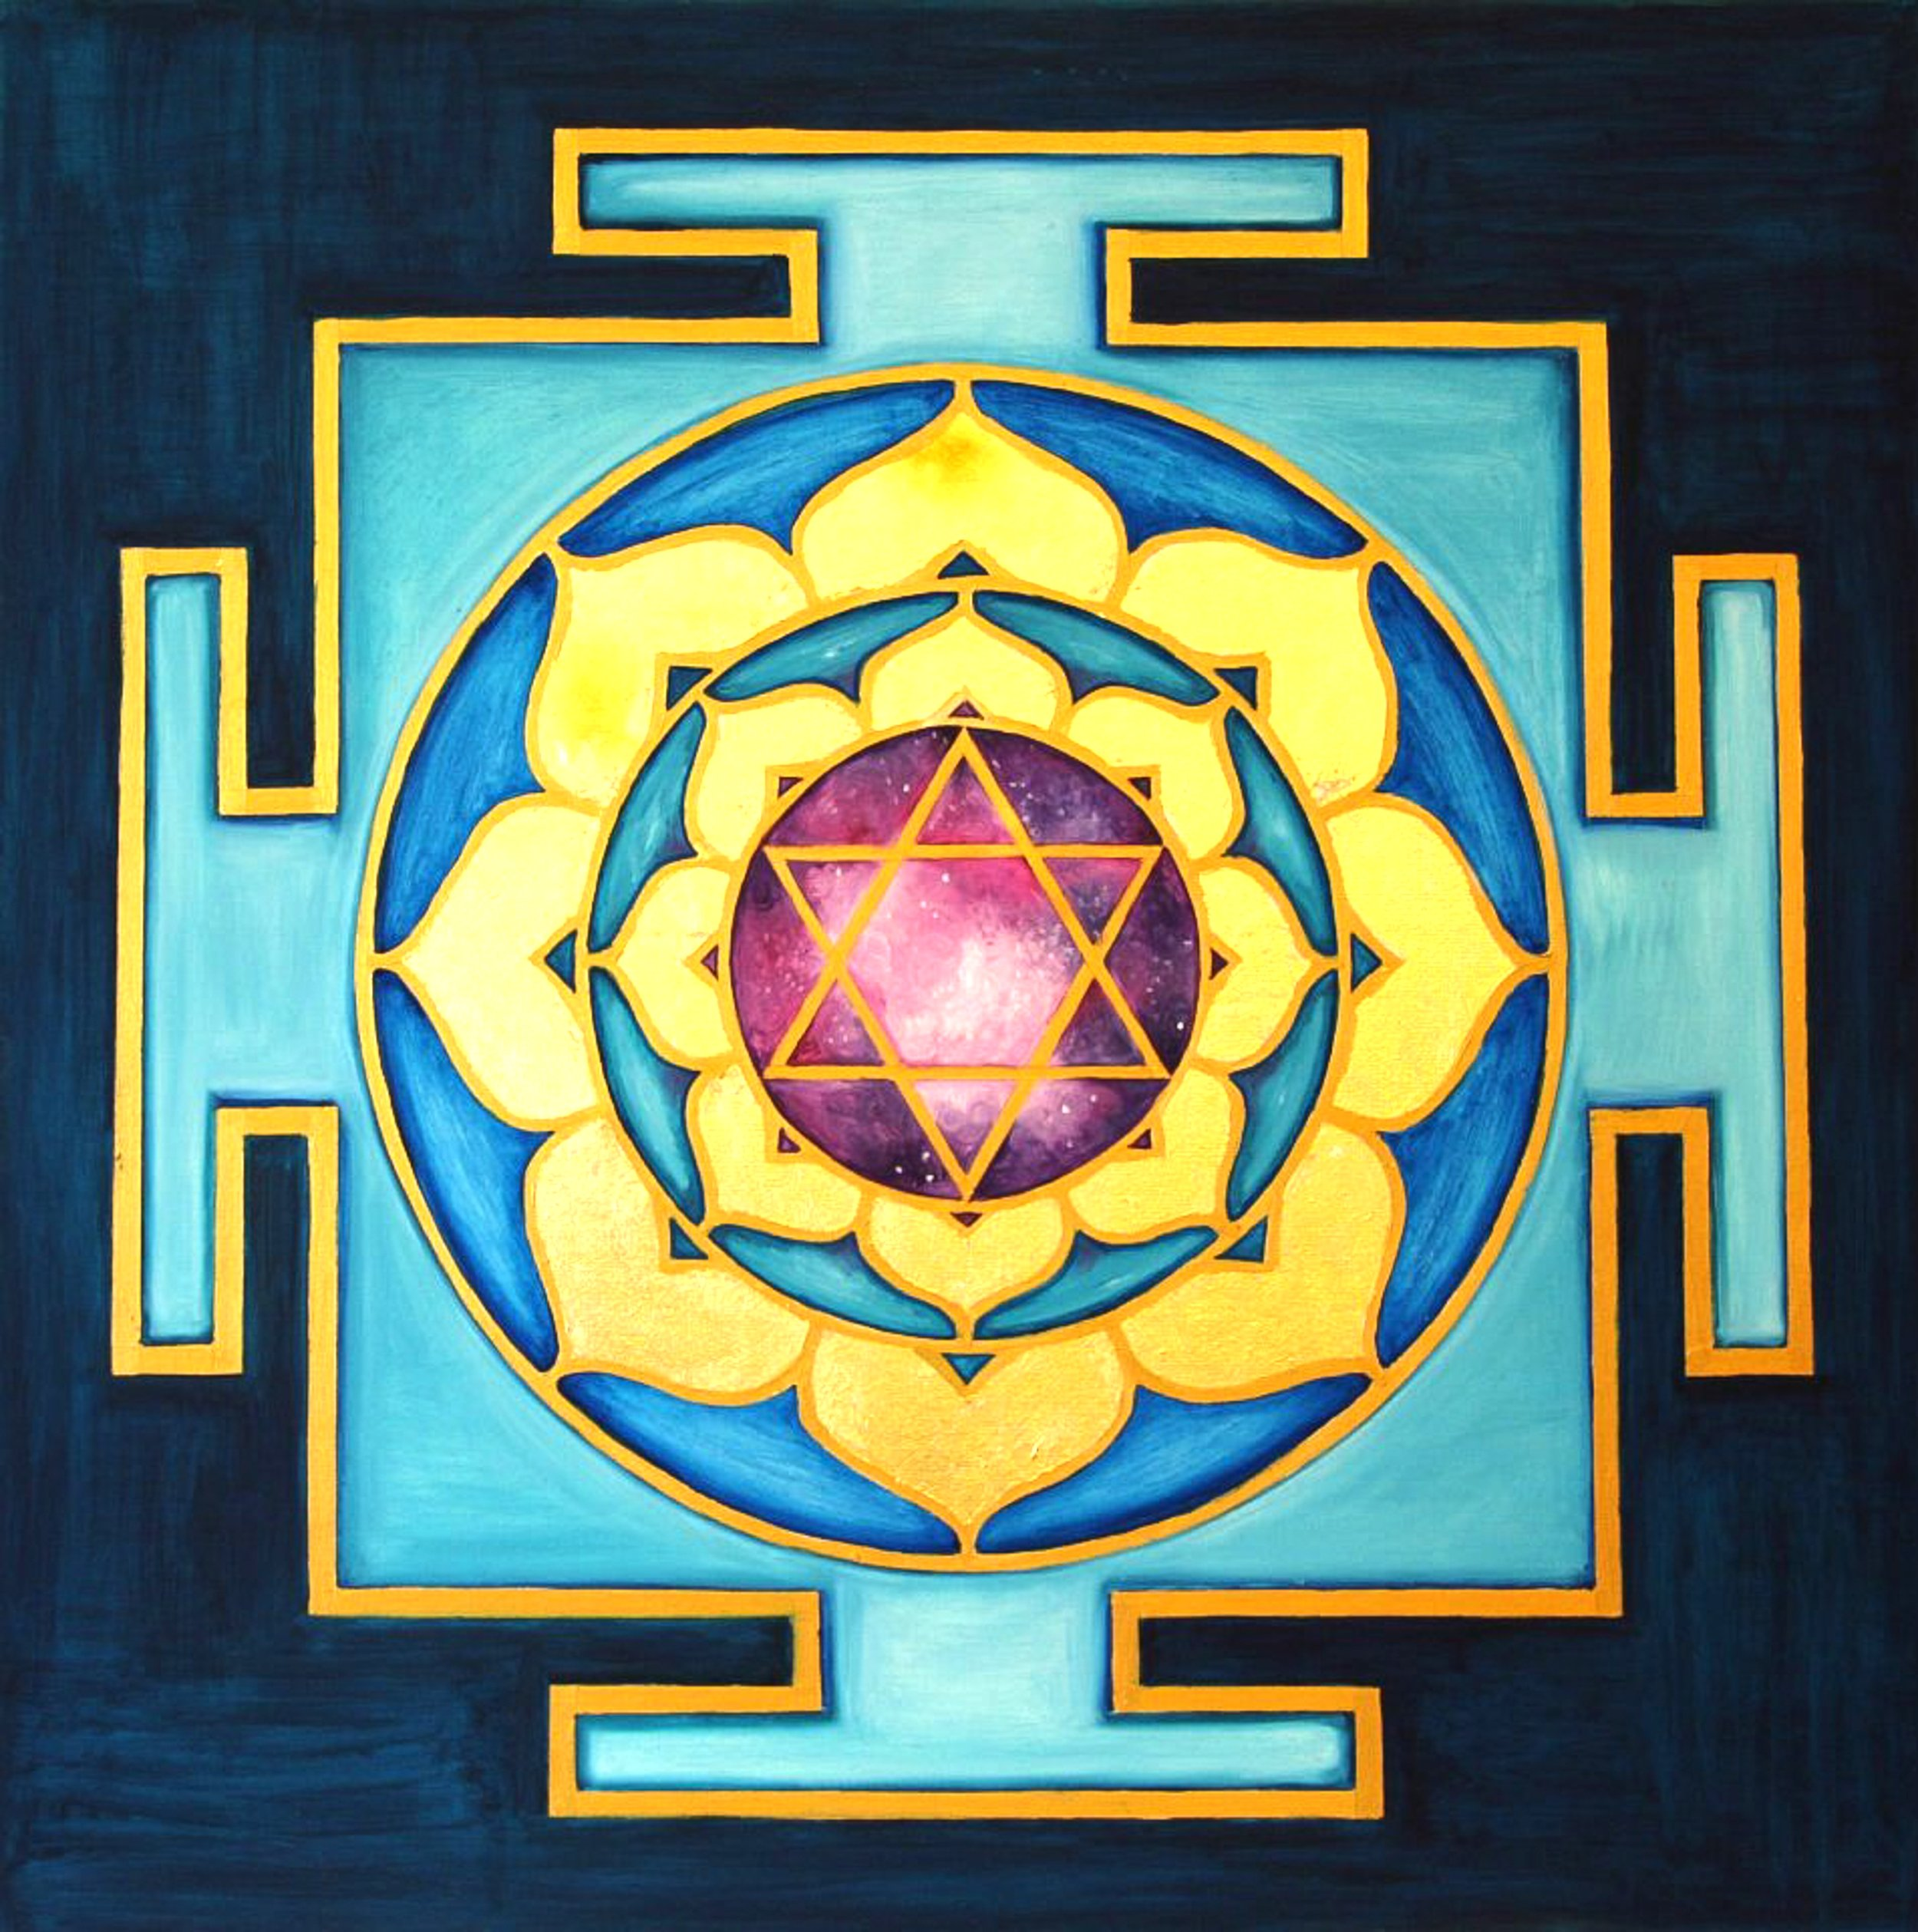 Yantra of the Great Cosmic Power Bhuvaneshwari, oil on canvas, 100x100 cm (see full image in Gallery)